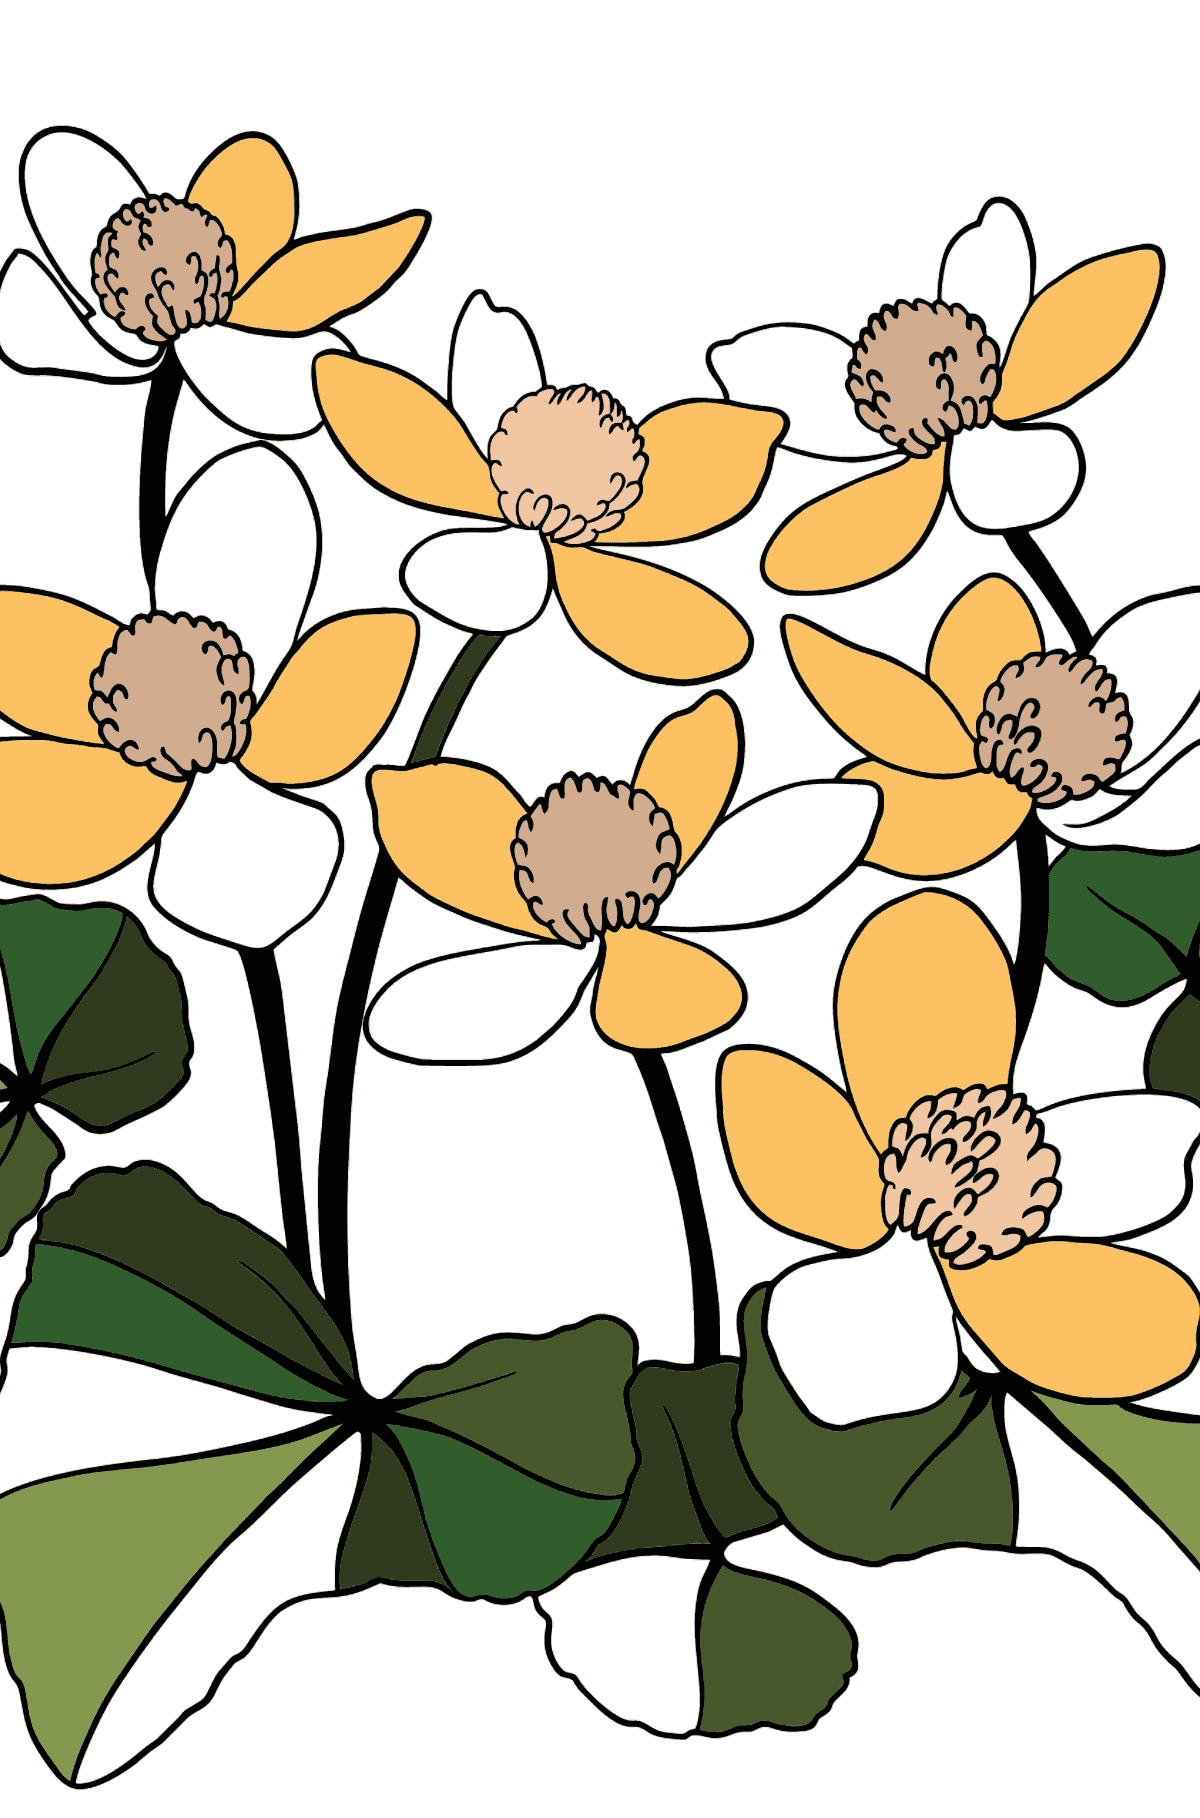 Flower Coloring Page - A Marsh Marigold with Yellow Petals - Coloring Pages for Kids